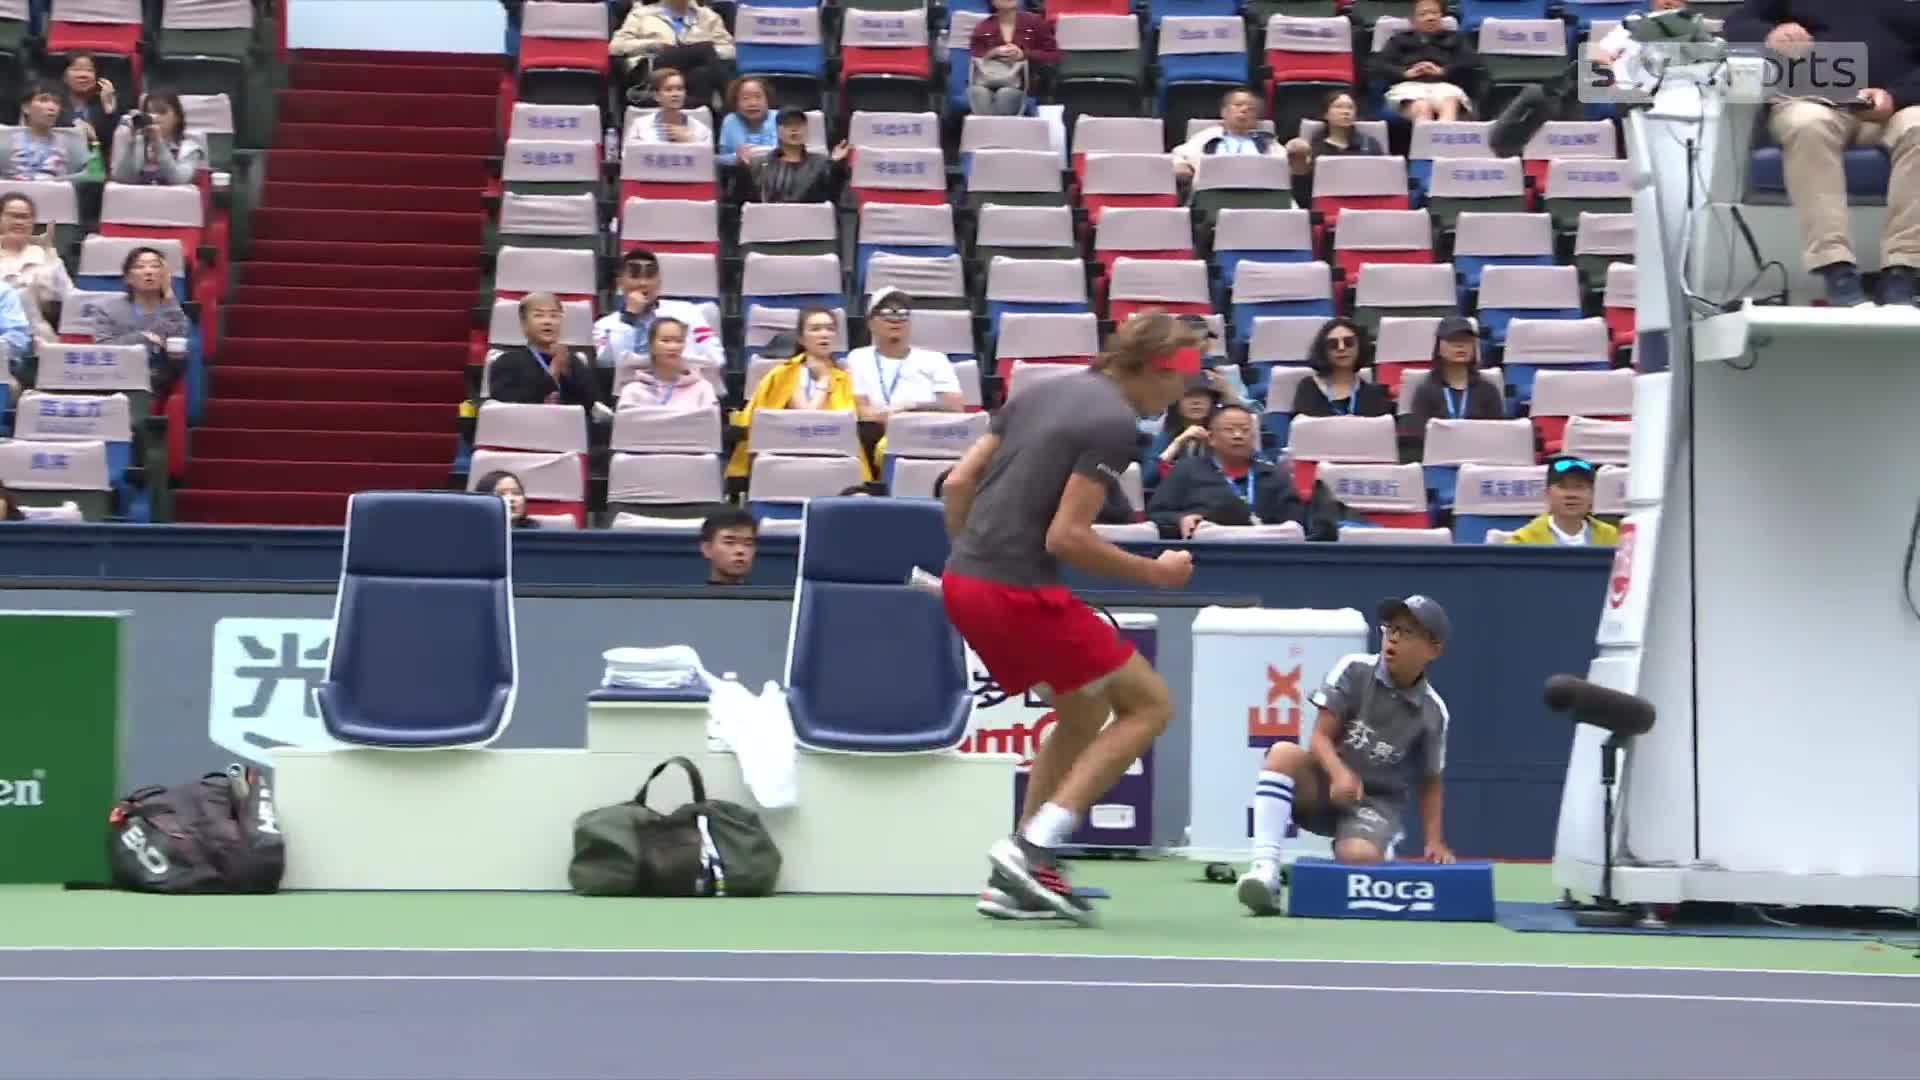 Alexander Zverev went on to win in straight sets, and it is a match the young ballboy won't forget for a while